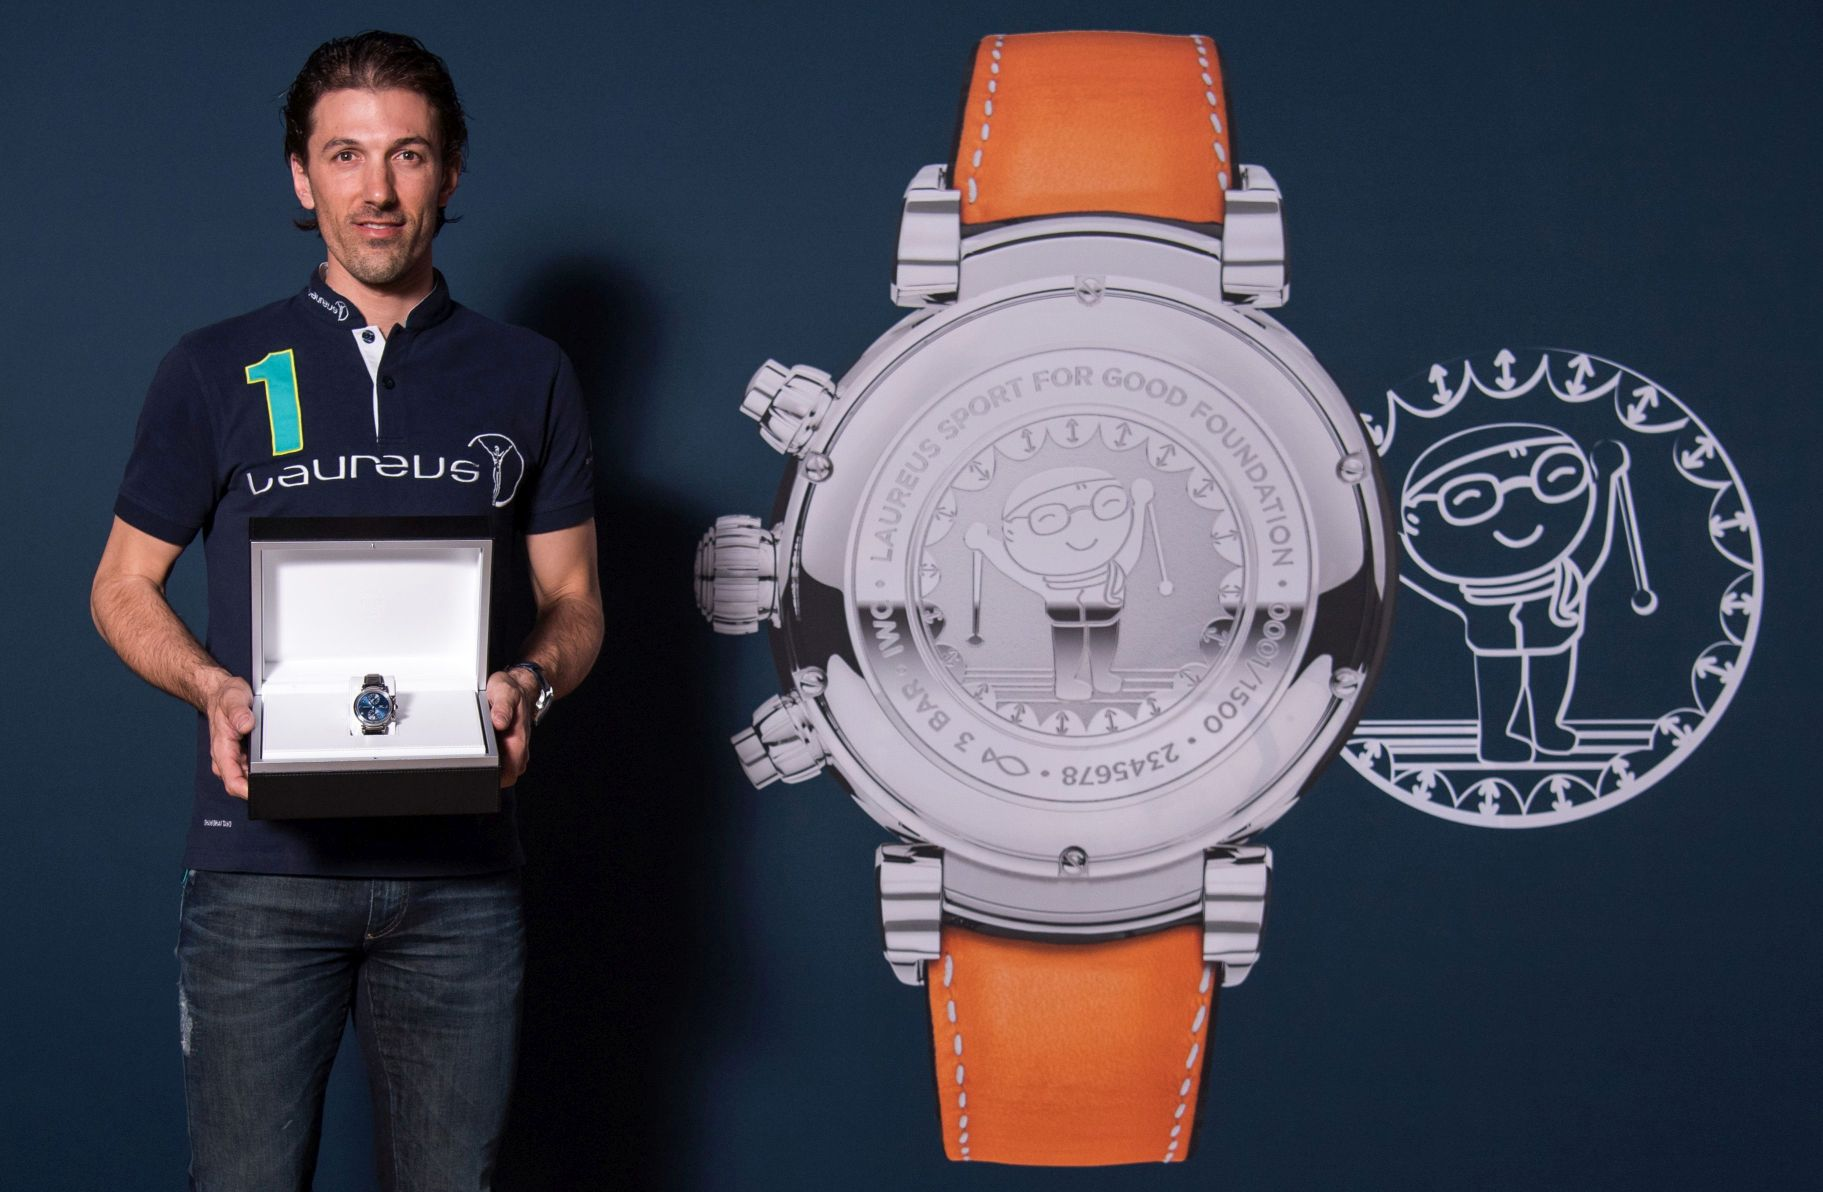 "MONTE CARLO, MONACO - FEBRUARY 13: The new member of the Laureus World Sports Academy is racing cyclist Fabian Cancellara. He received an IWC Da Vinci Chronograph Edition ""Laureus Sport for Good Foundation"" from the new CEO of IWC, Chris Grainger-Herr, February 13, 2017 in Monte Carlo, Monaco. (Photo by Lukas Schulze/IWC Schaffhausen via Getty Images )"